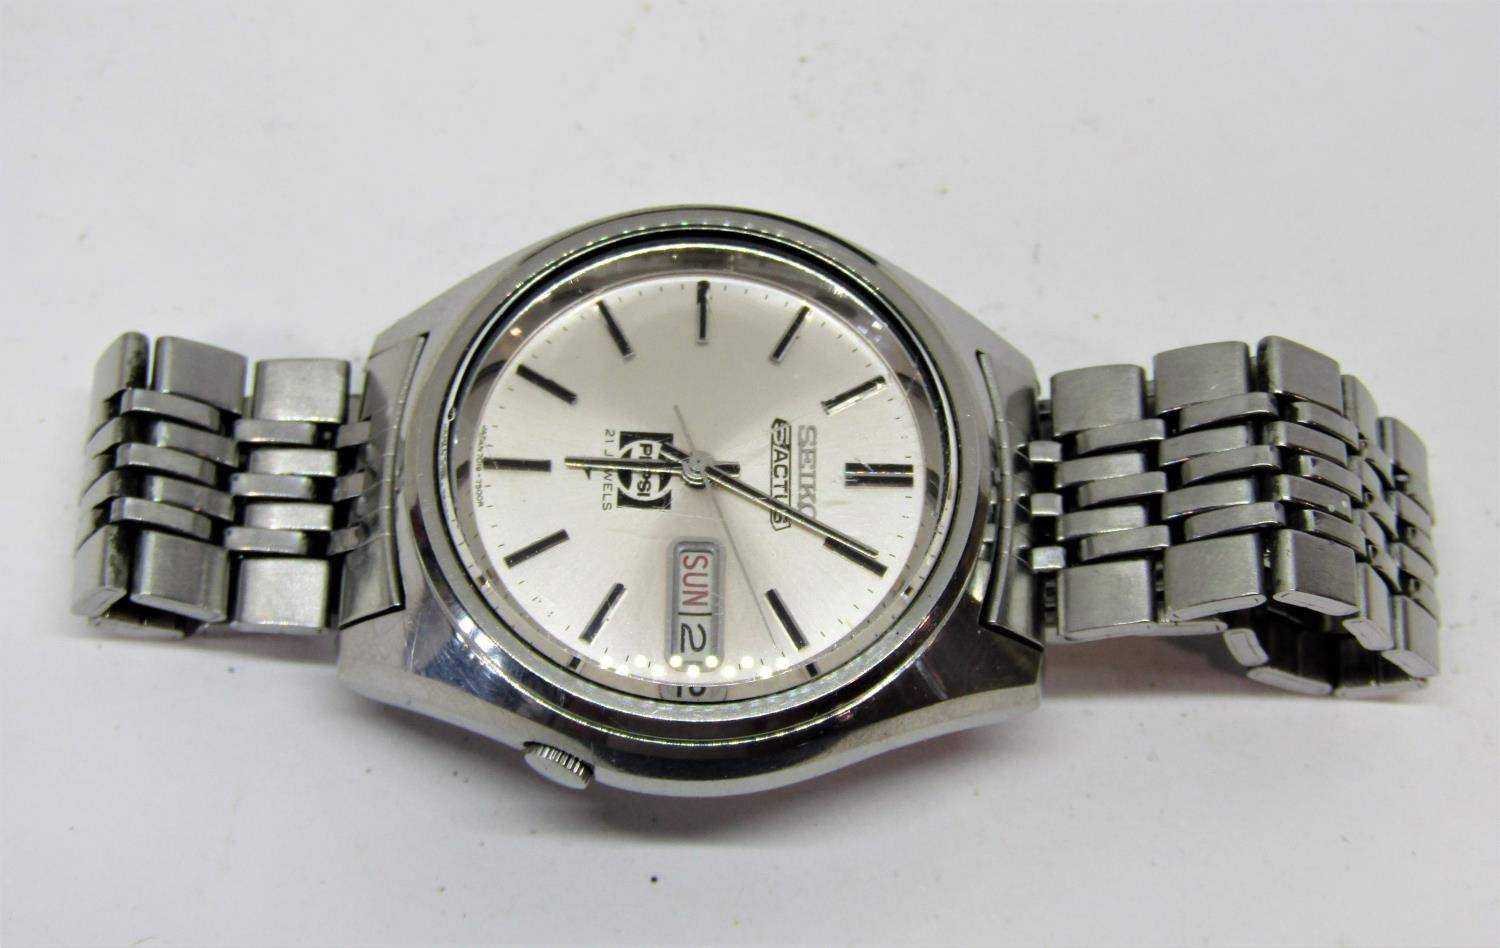 Vintage gent's Seiko 5 Actus Pepsi 21 jewels stainless steel wristwatch, currently running, 36mm - Image 5 of 8